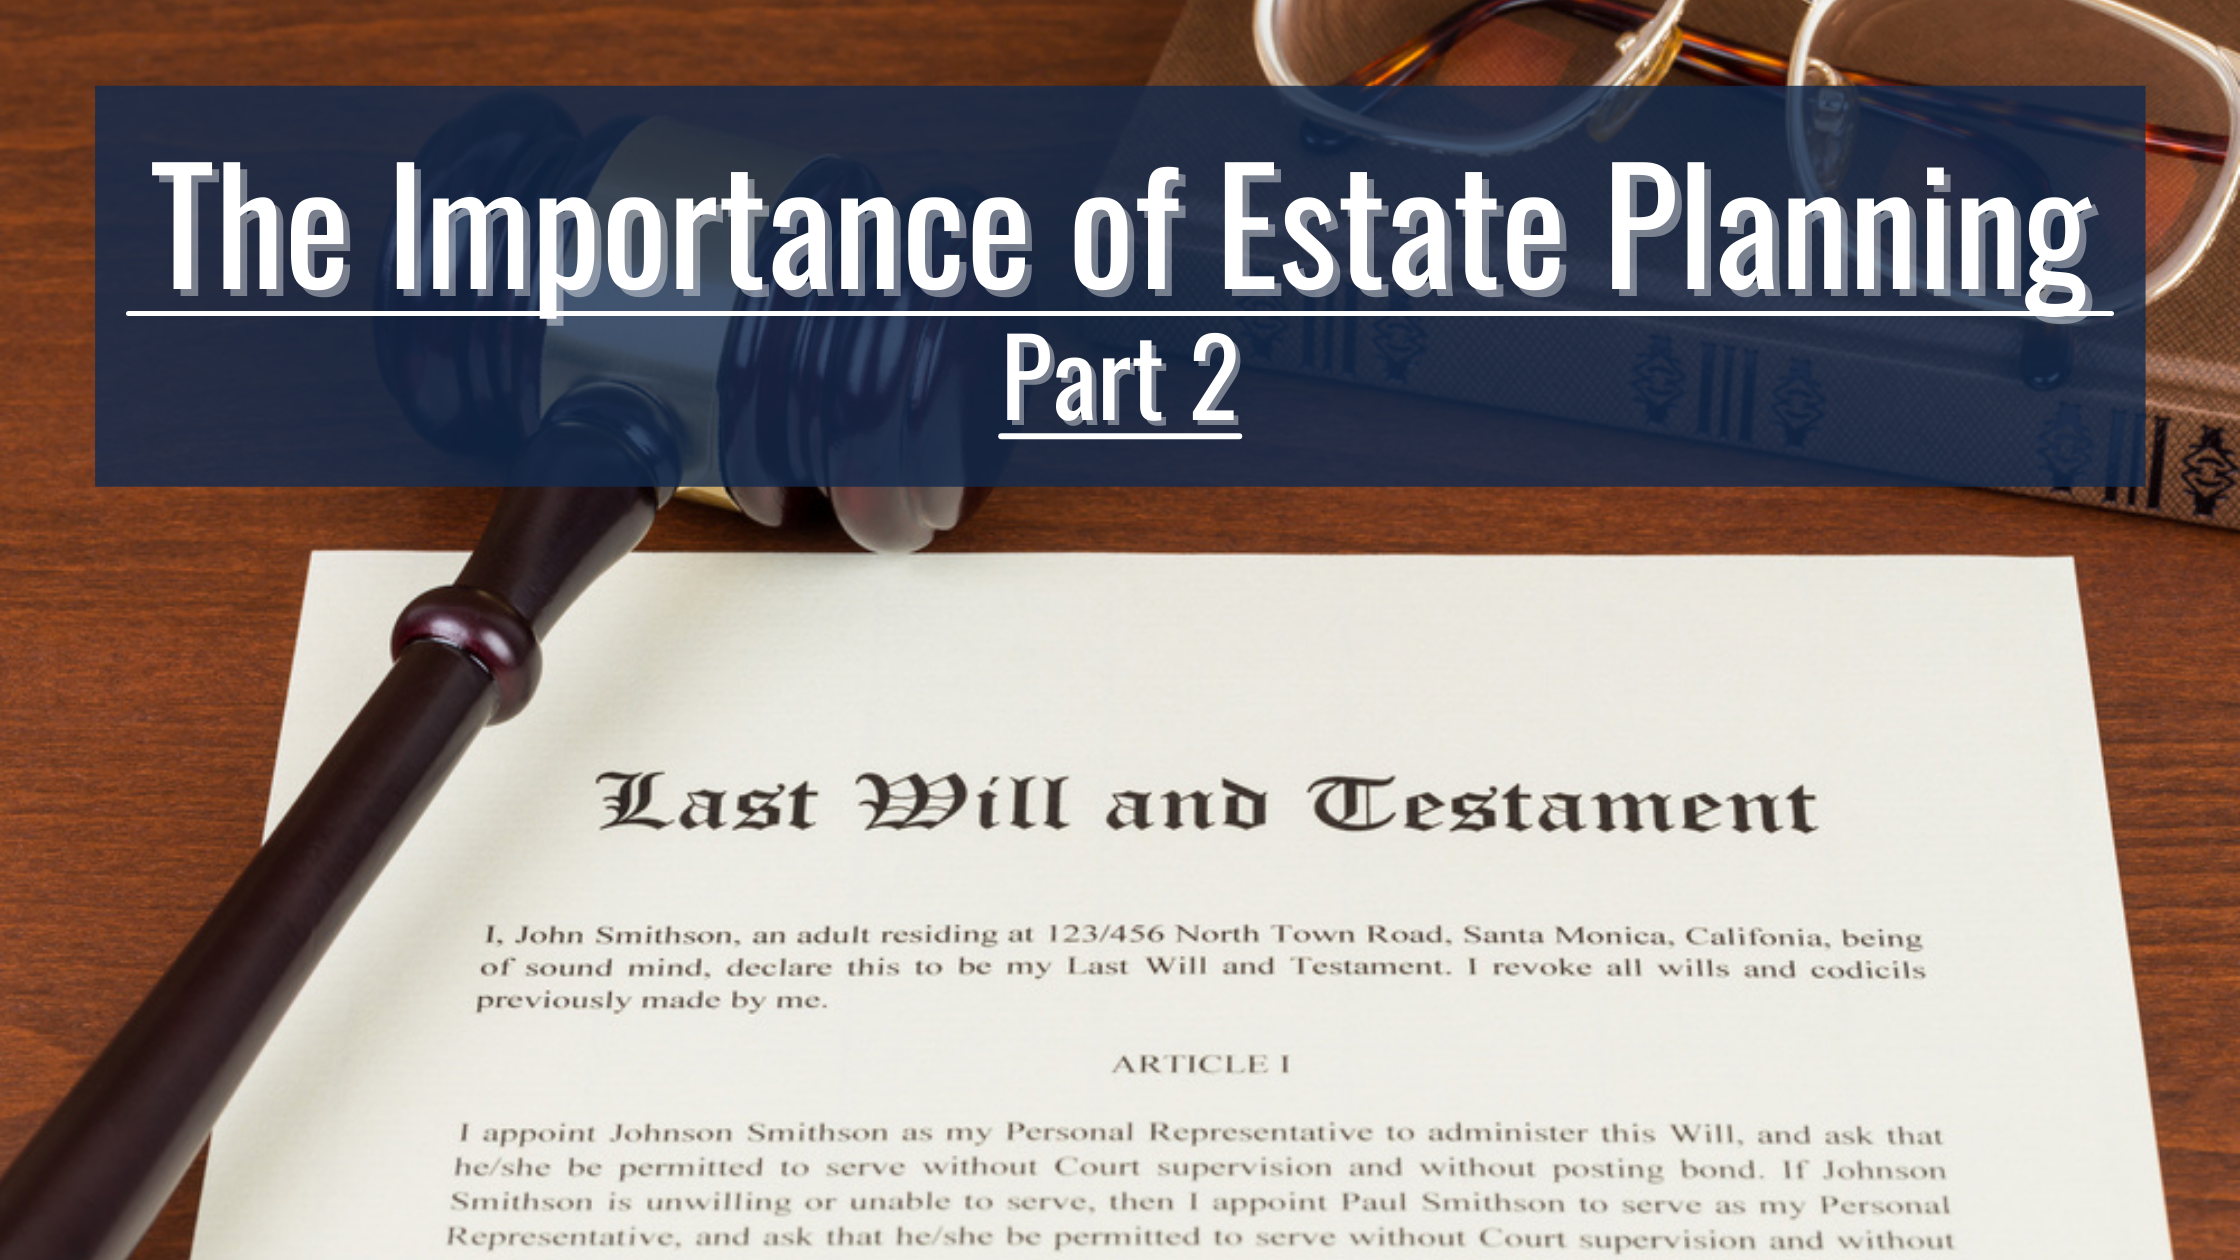 The Importance of Estate Planning in 2021: Part 2-Wills and Trusts